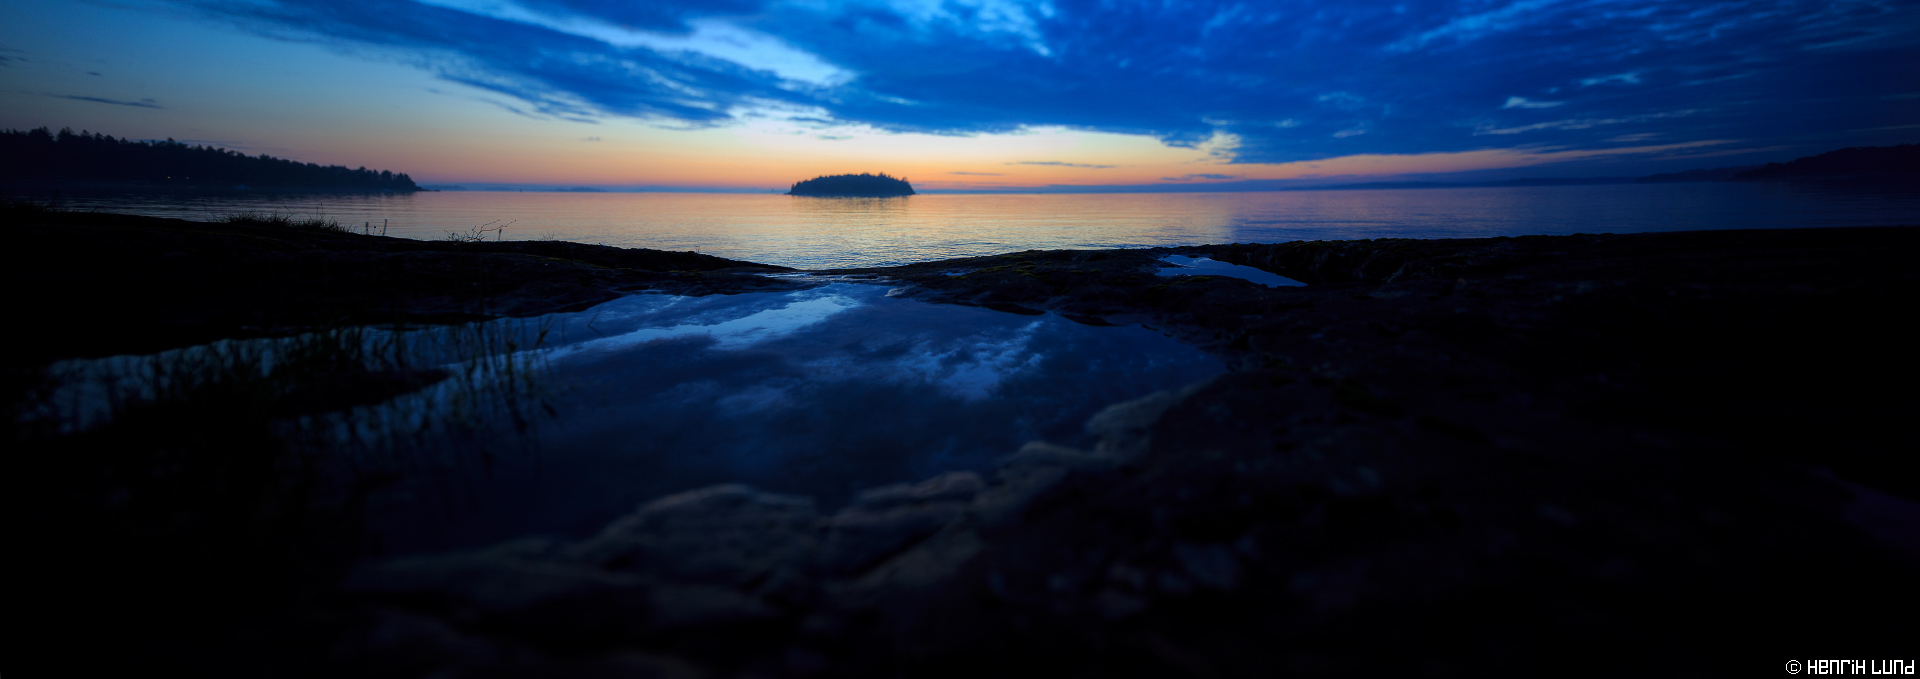 Nightless night - midsummernight. Bodö, Porvoo archipelago, Finland, June 2015.